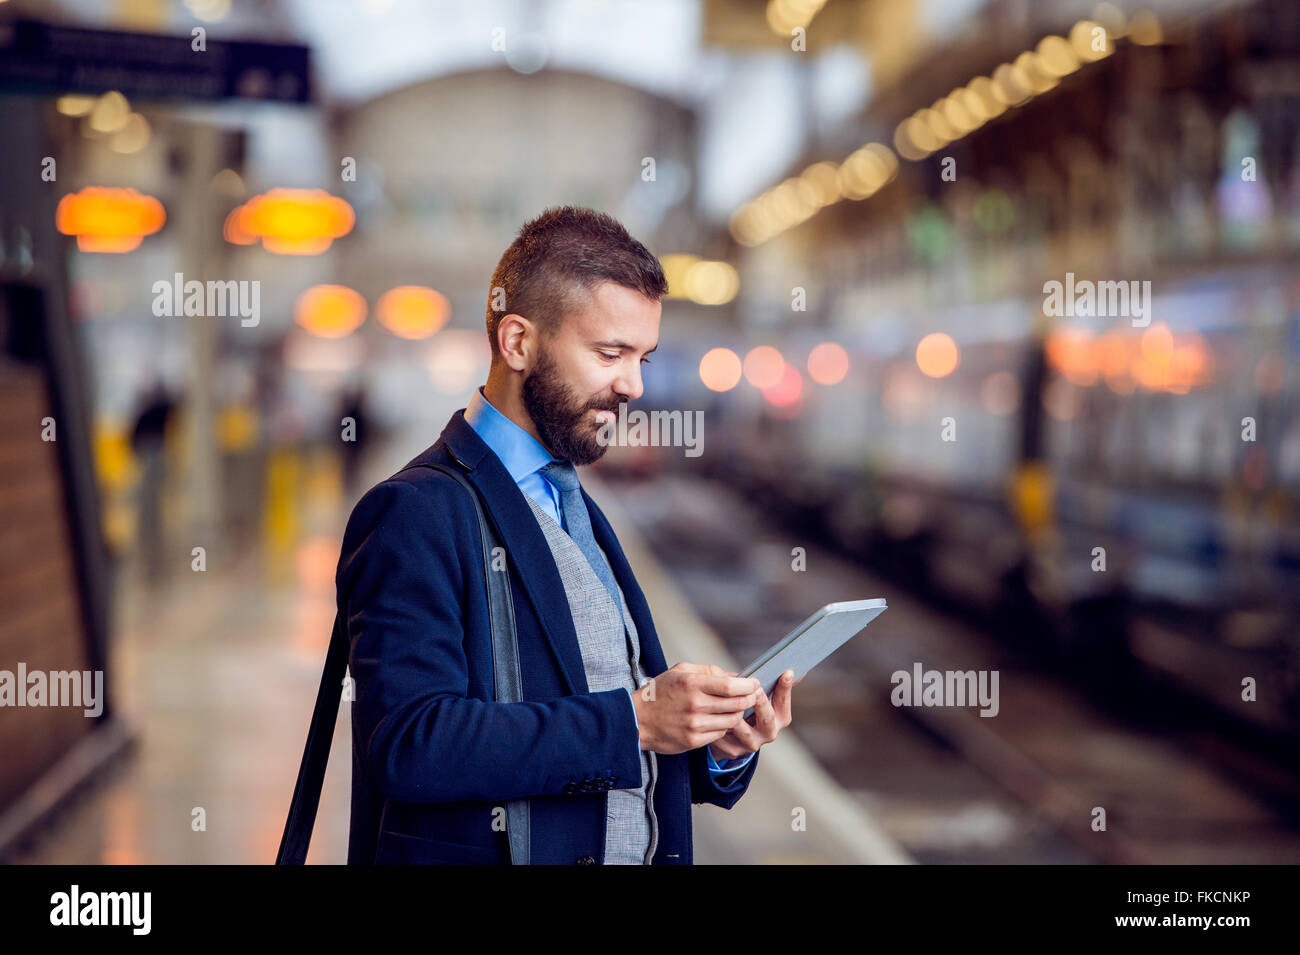 Hipster businessman with tablet, waiting, train platform - Stock Image